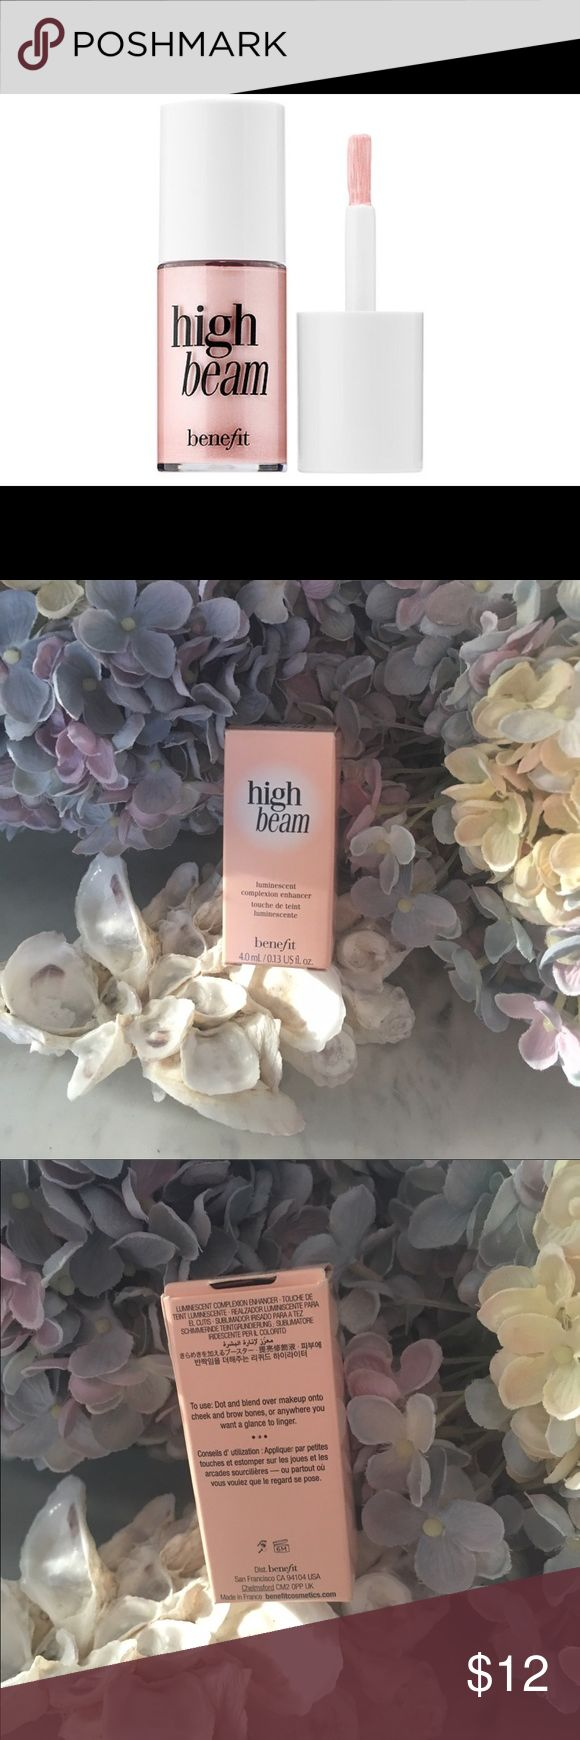 Benefit High Beam This is the travel size. Perfect size because a little goes a long way. This is a gorgeous saying-pink, liquid highlighter to add a subtle glow. Dot and blend high beam to the high points of your face and then collect compliments ❤️. No trades. Bundle to save & Enjoy 😊 Sephora Makeup Luminizer